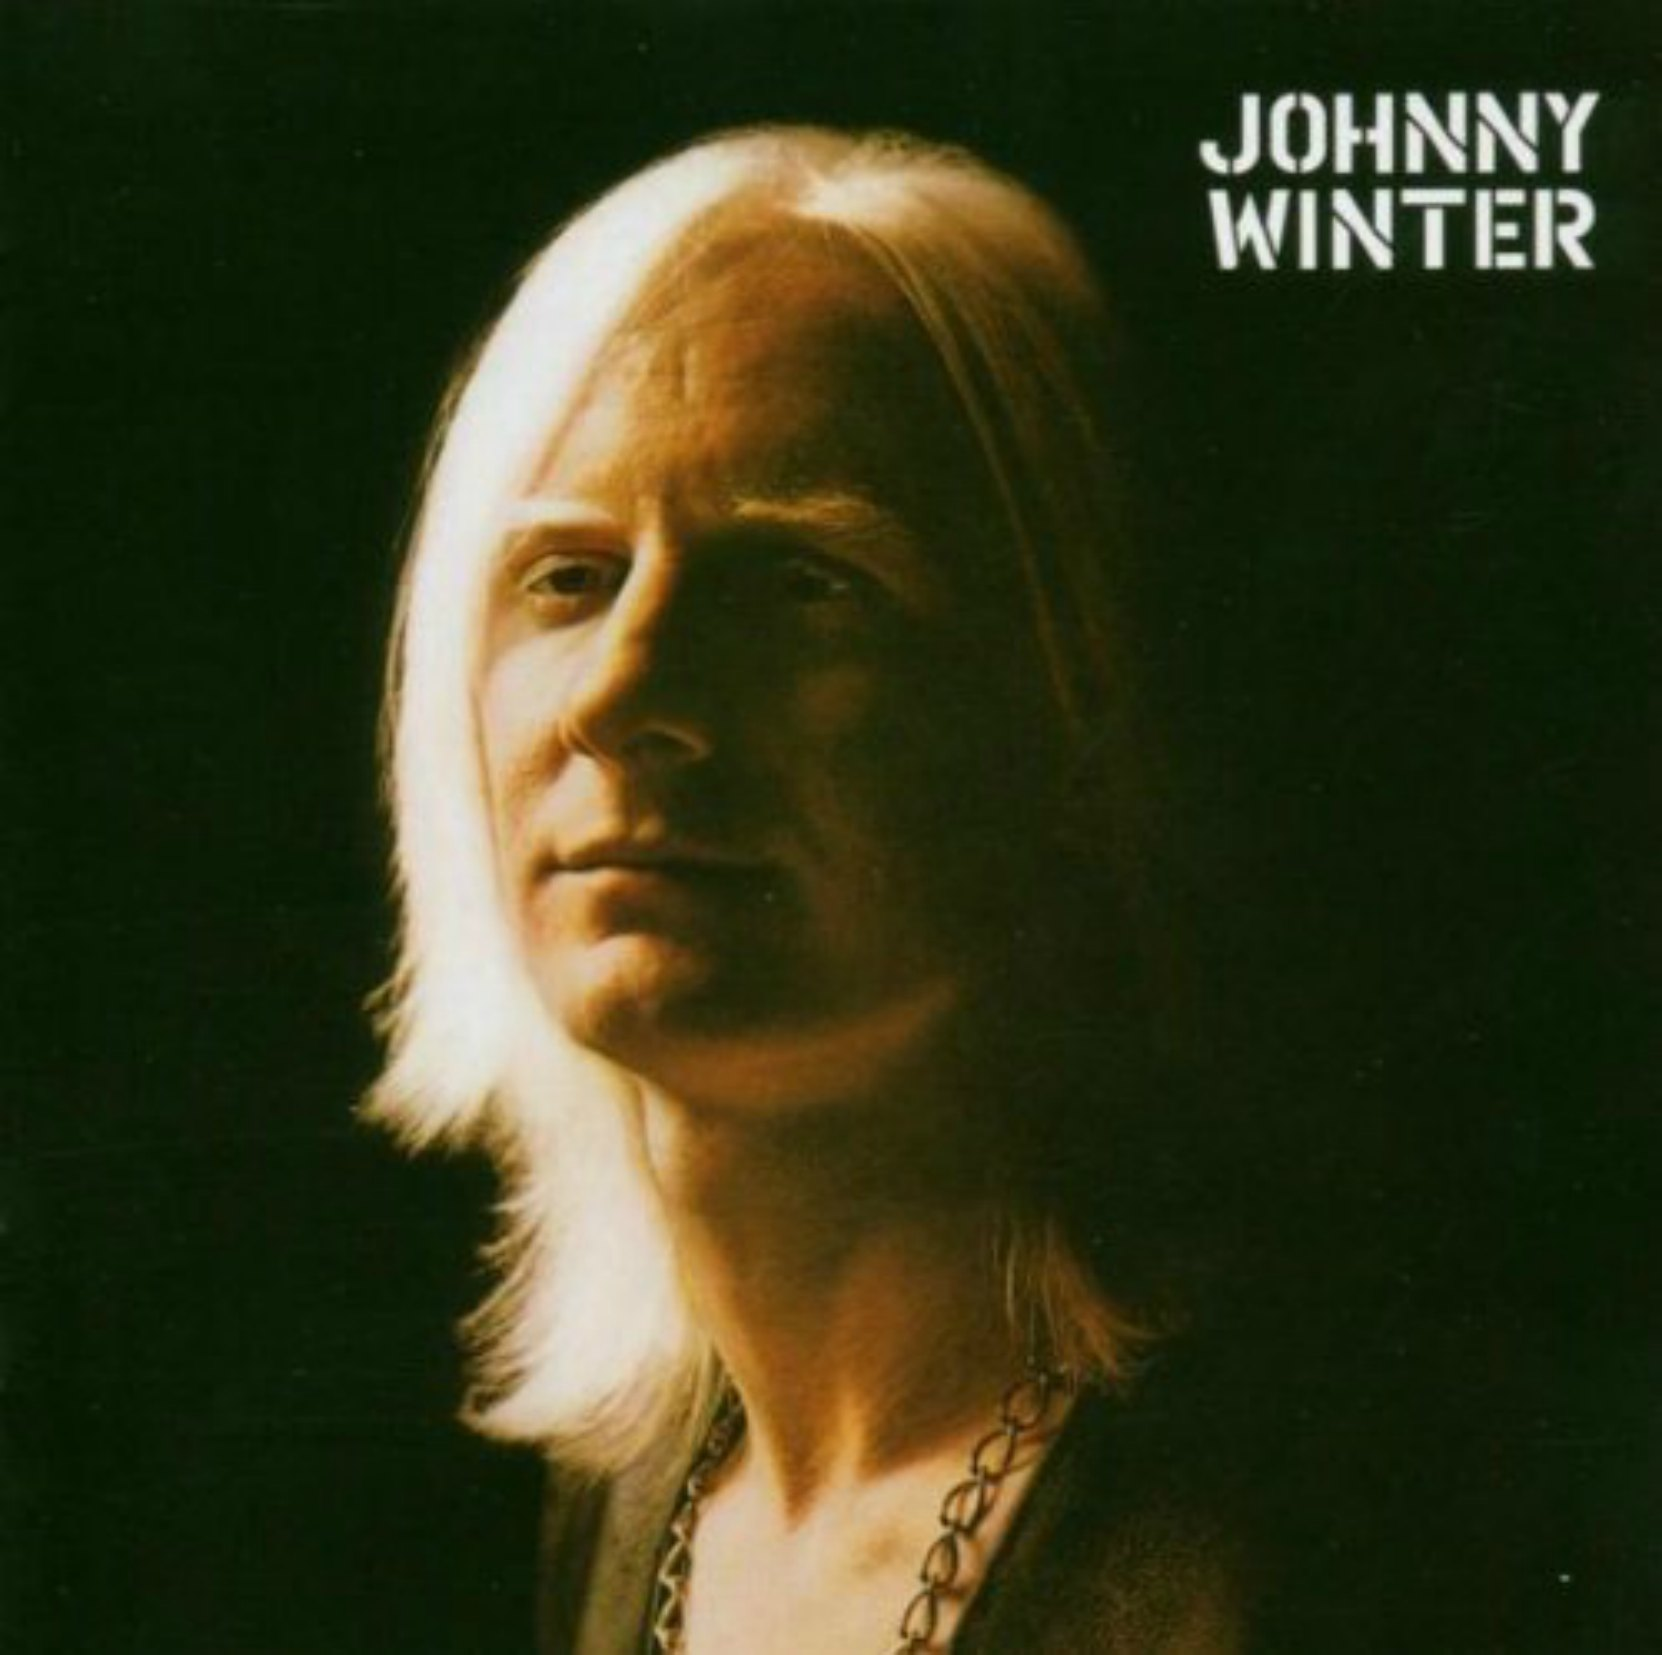 Album cover, Johnny Winter, released on Columbia Records in 1970.